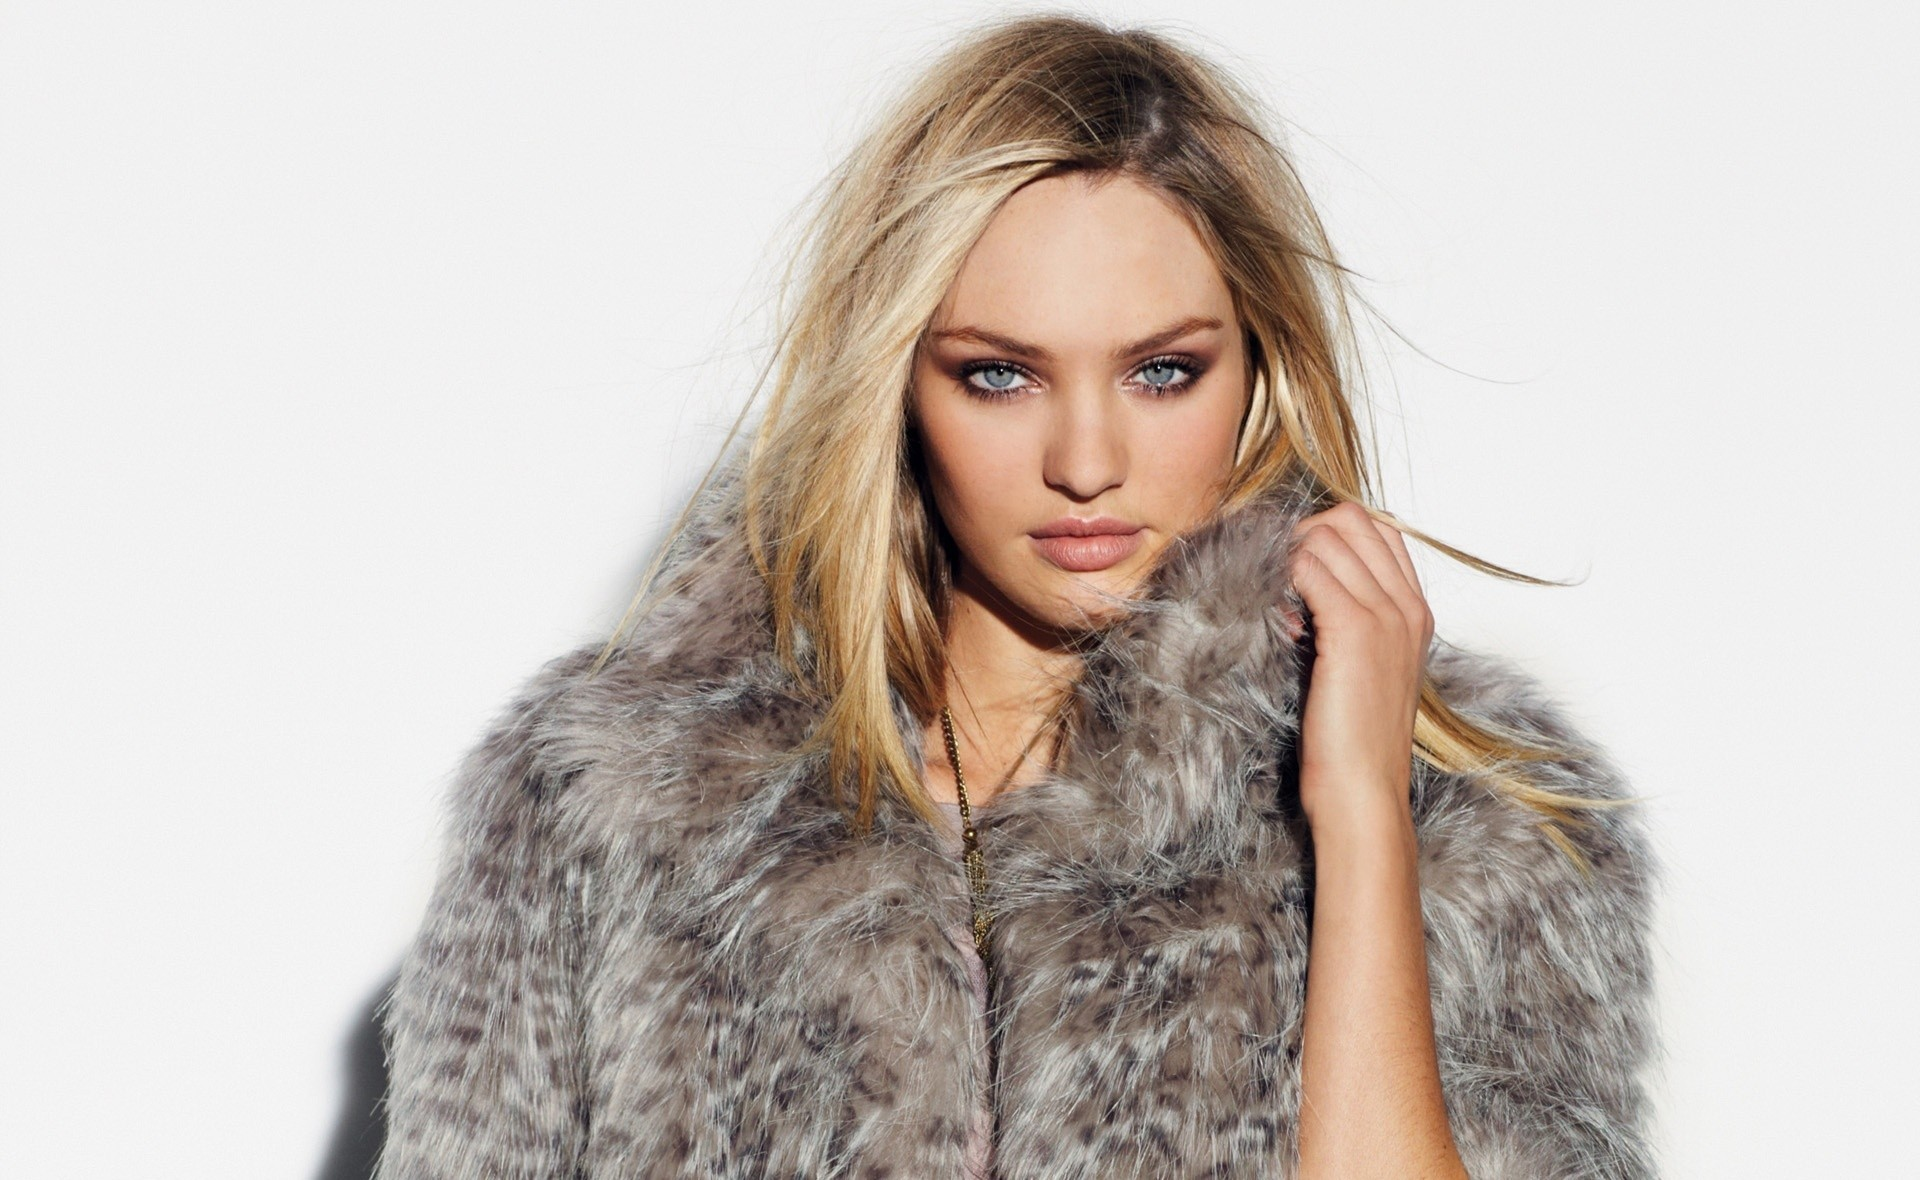 blondes woman candice swanepoel HD Wallpaper